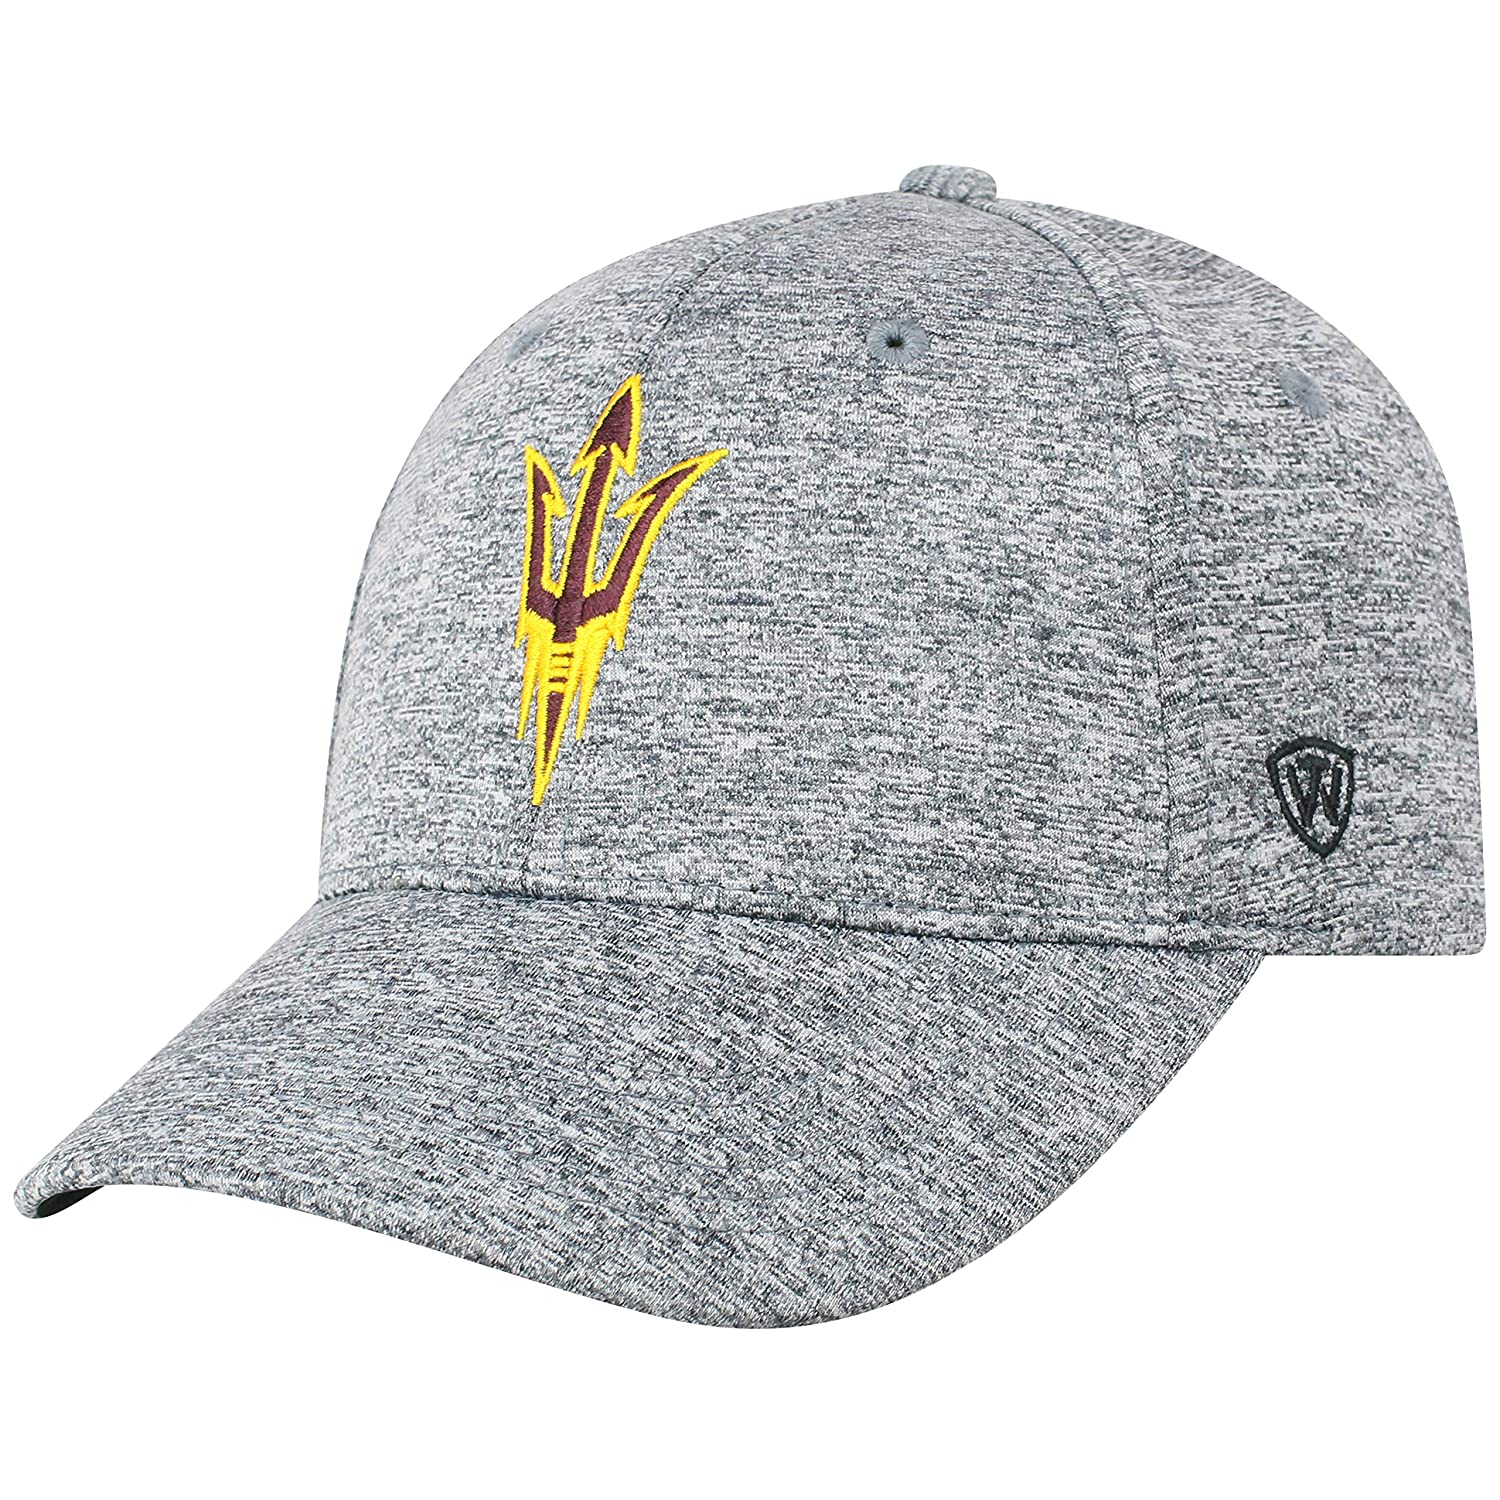 Top of The World NCAA Mens Hat Adjustable Steam Charcoal Icon